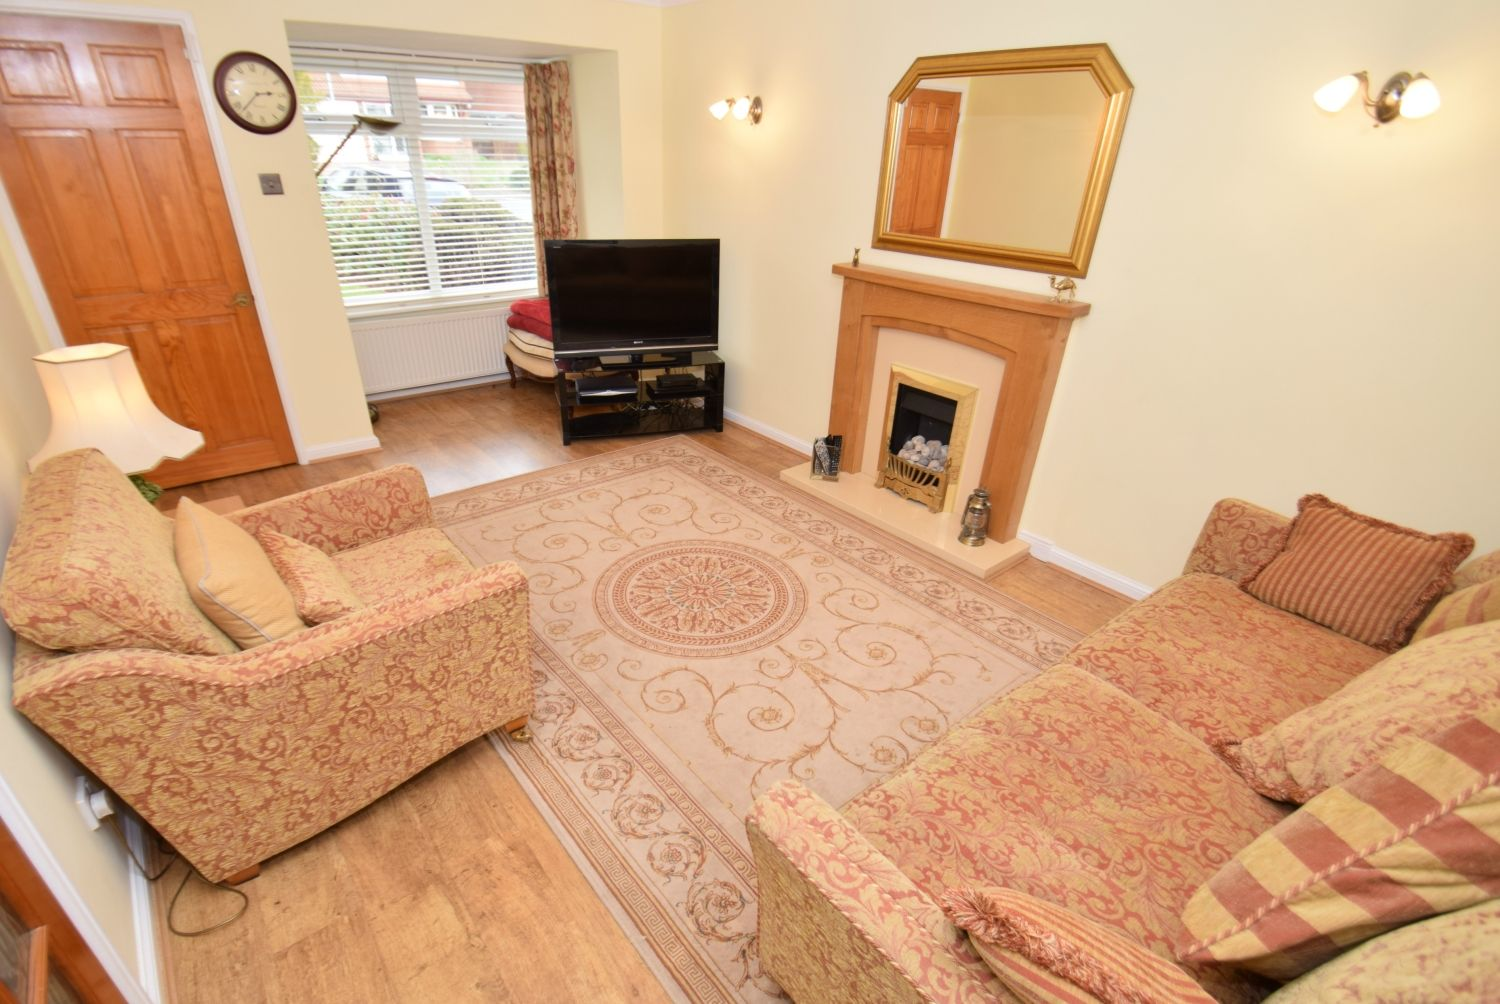 3 bed detached for sale in Foxes Close, Blackwell, B60 7